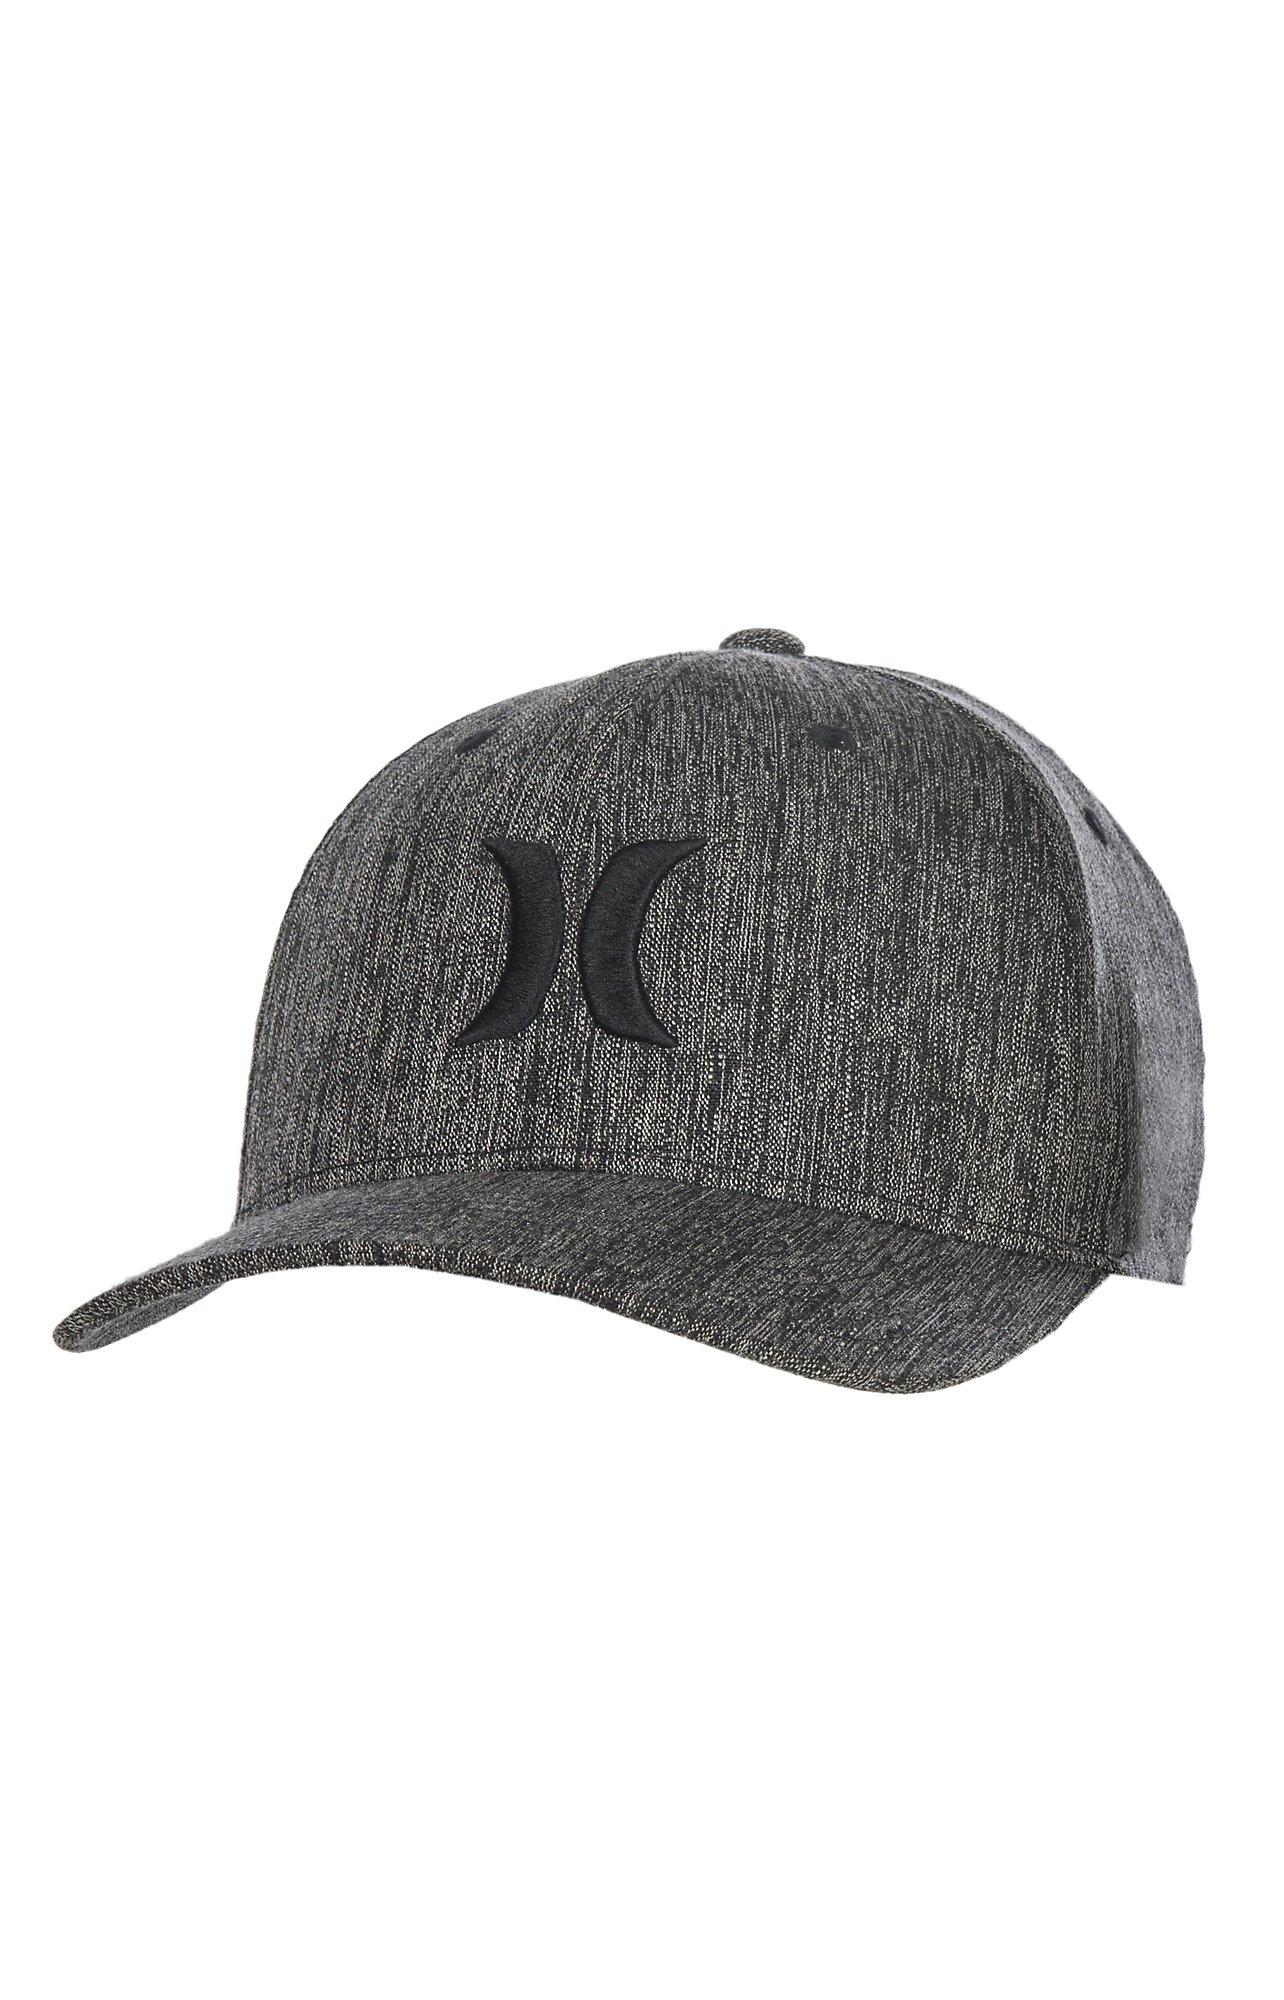 low priced 701f5 e0afd buy hurley phantom flyer cap mens 1bf42 2ef36  reduced hurley dri fit one  and only black flexfit cap cavenders 2e329 5970a